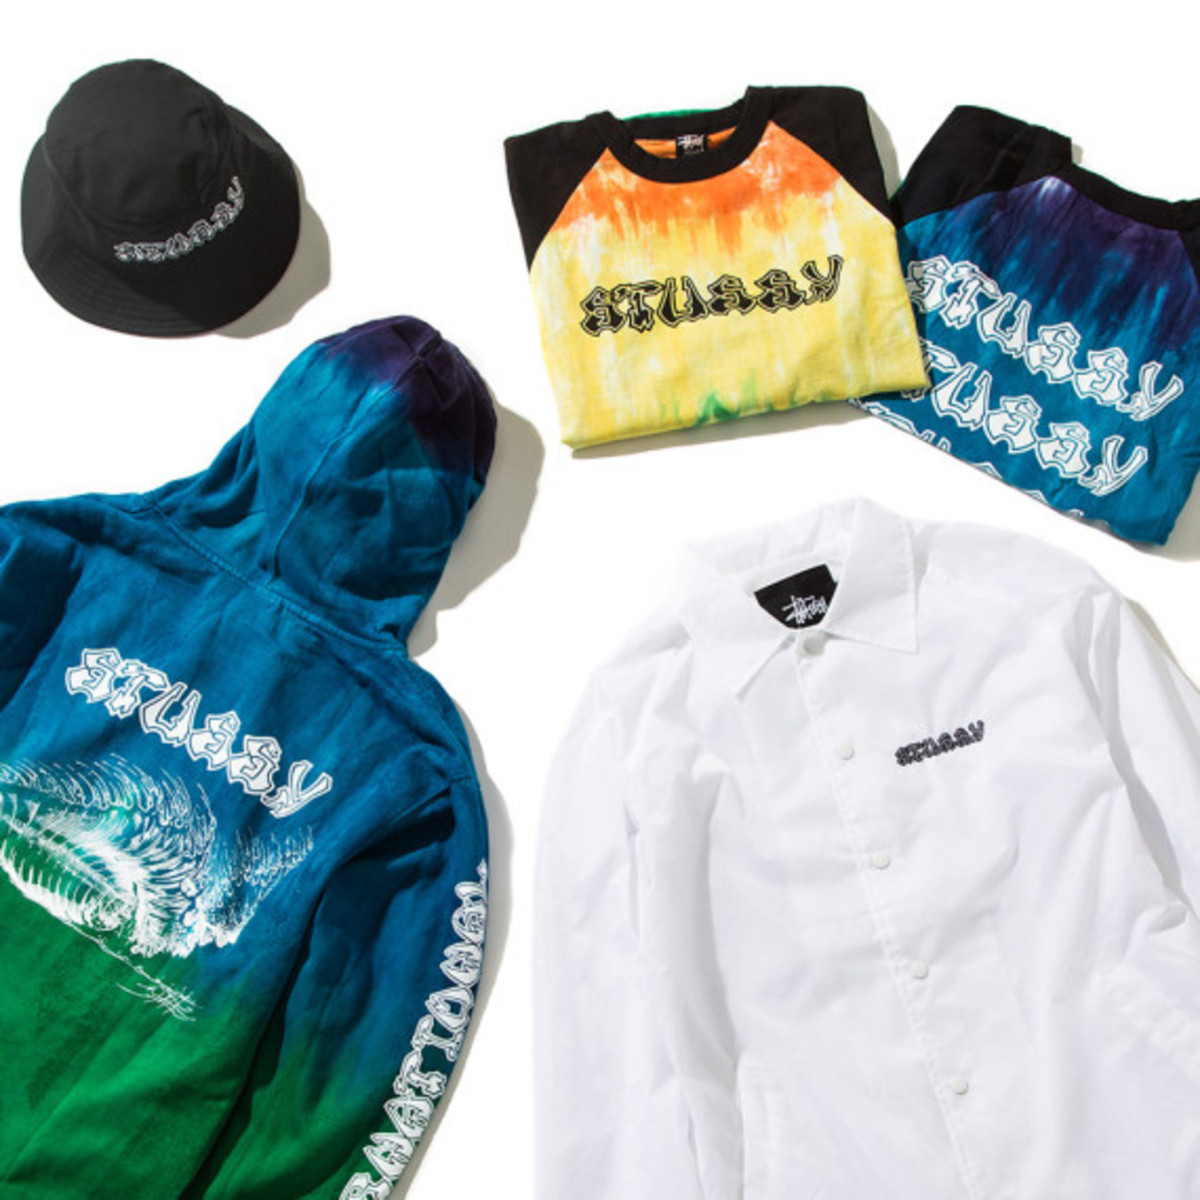 wes-humpston-stussy-capsule-collection-17